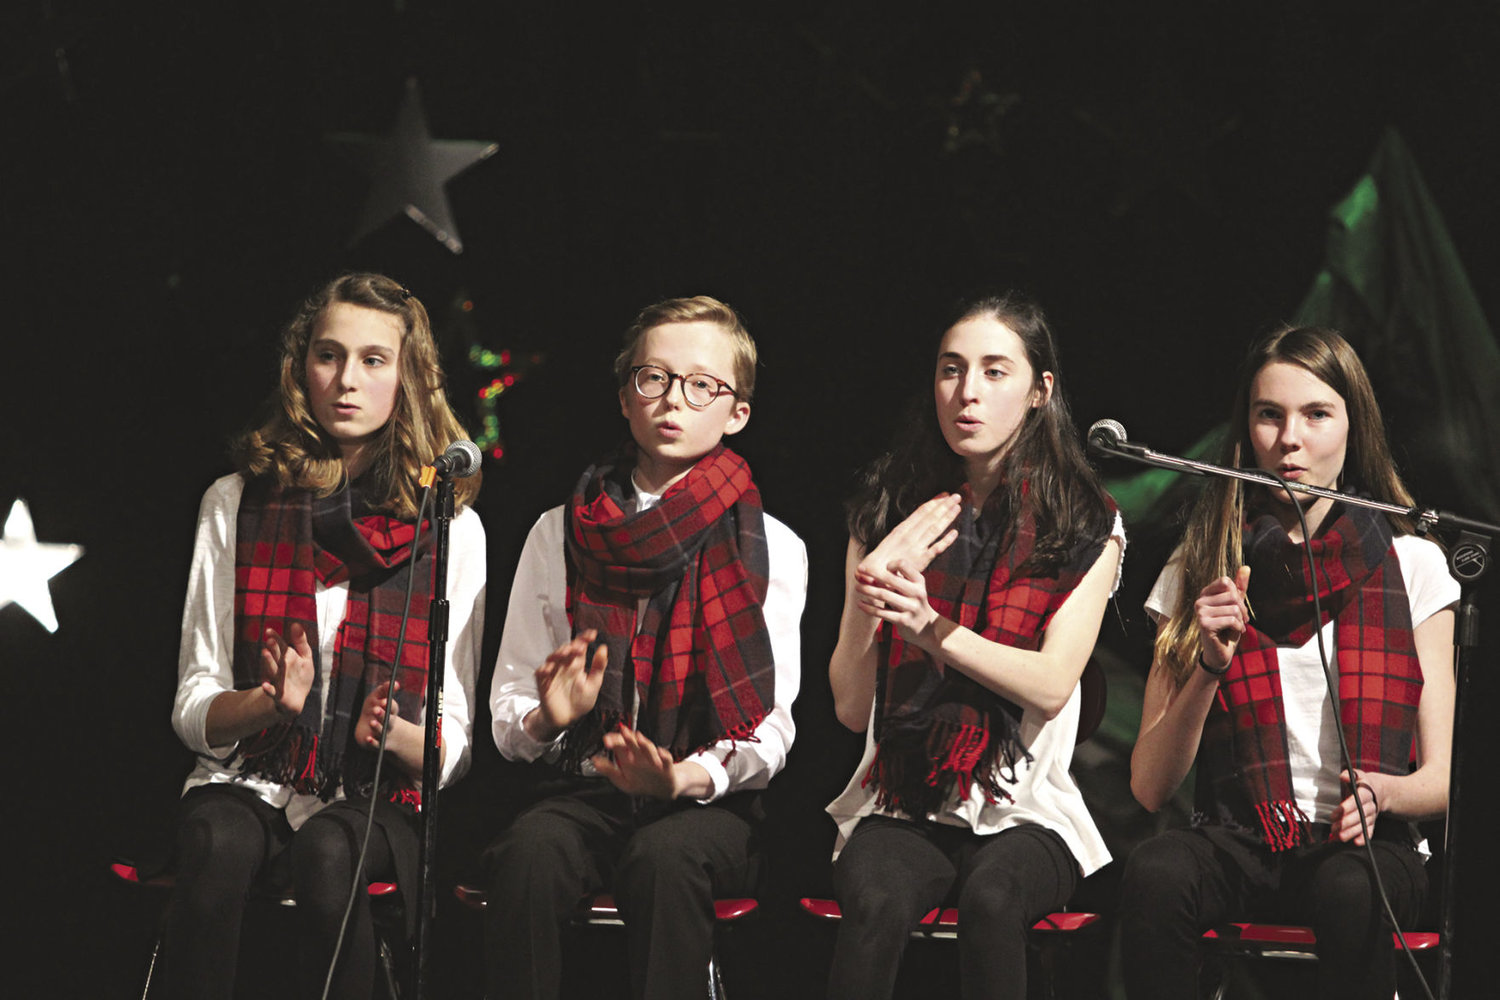 The Sharp Flats, composed of (from left) Maya Dow, Max Miles, Morgan Trail and Grace Wentzel, won third place in the junior division. The group is also to perform at Concerts on the Dock. Photo by Allison Arthur